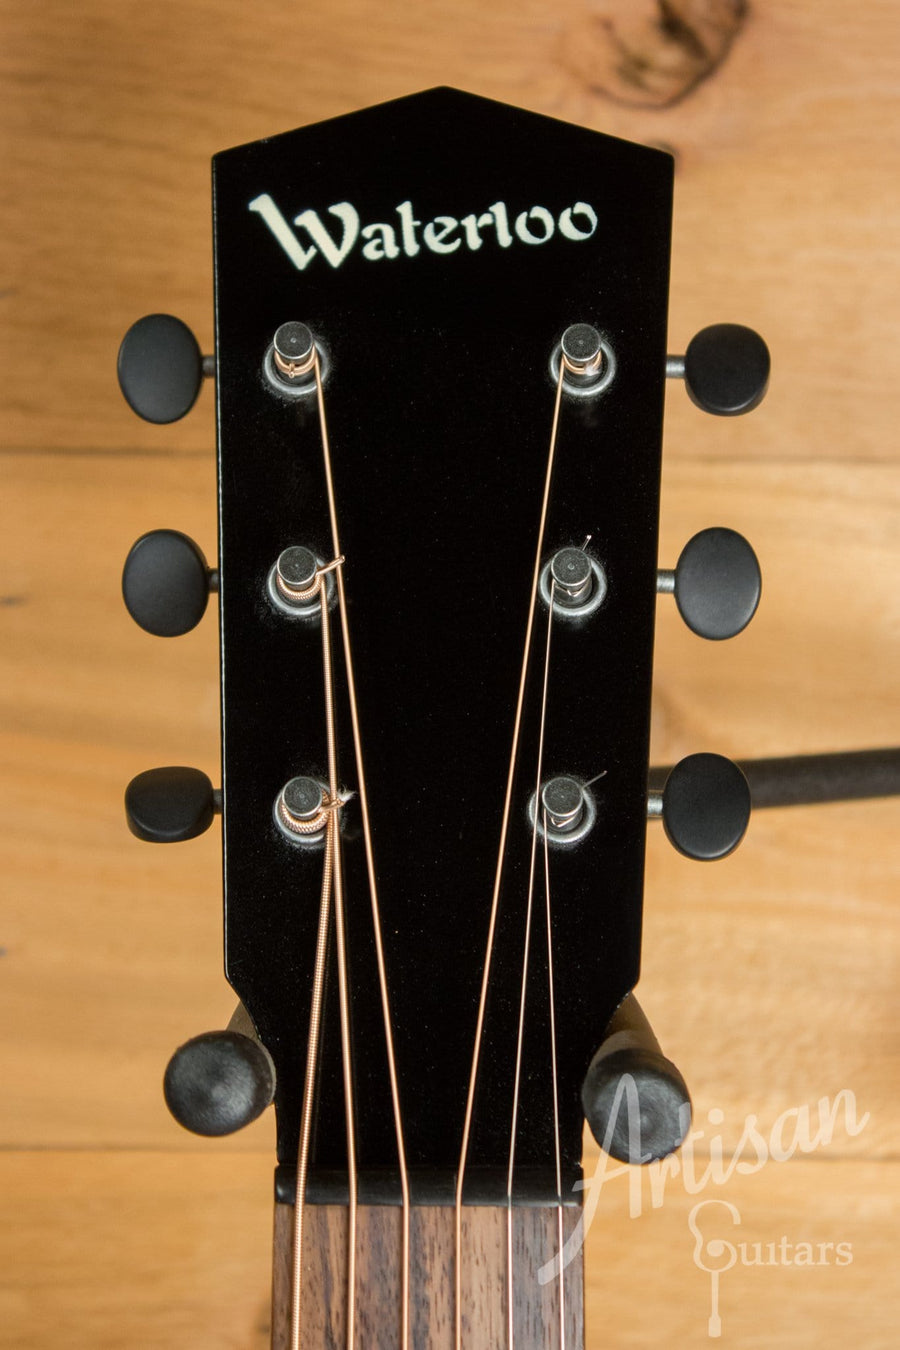 Waterloo WL-14L Guitar with Sunburst Finish with Small Neck Profile ID-10890 - Artisan Guitars